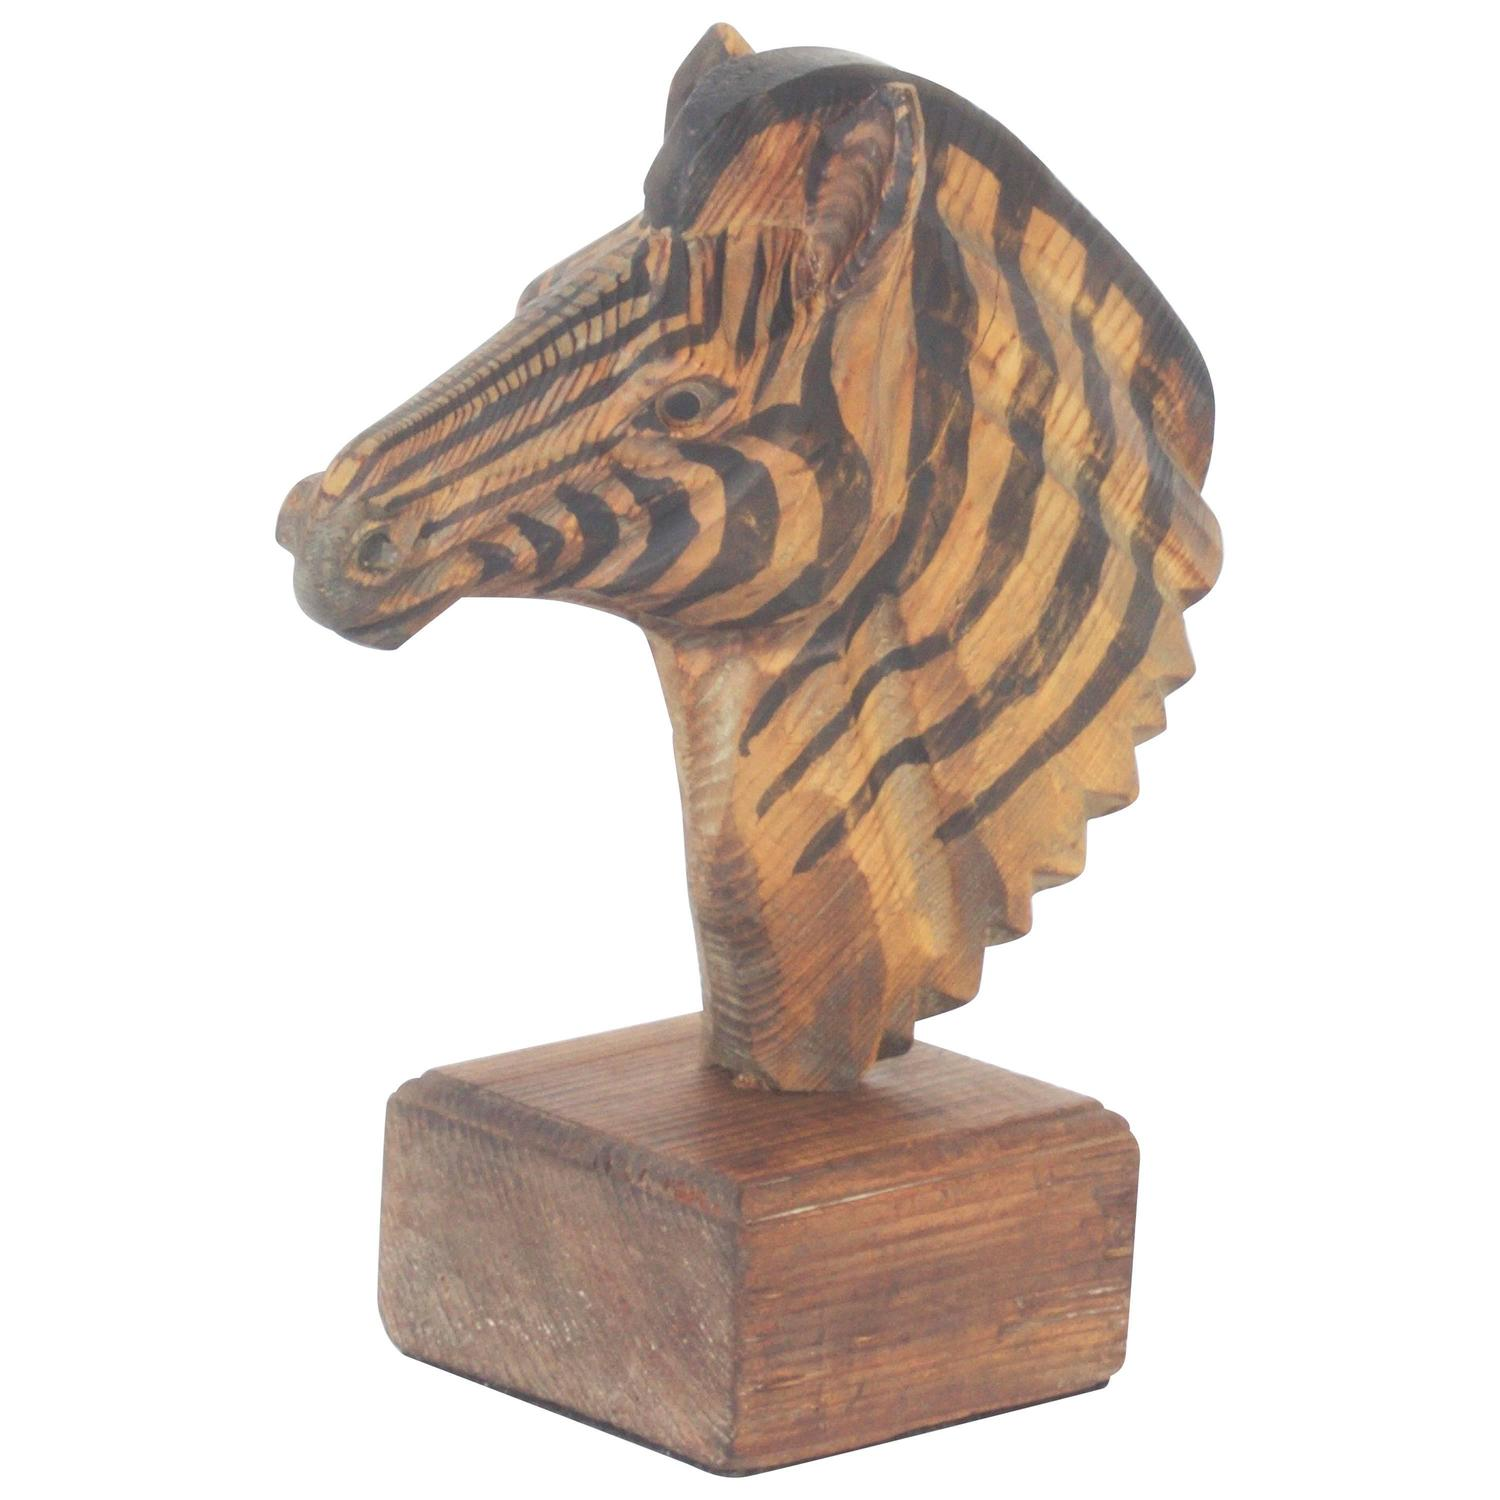 Naturalist Midcentury Carved Wood Sculpture Of A Zebra